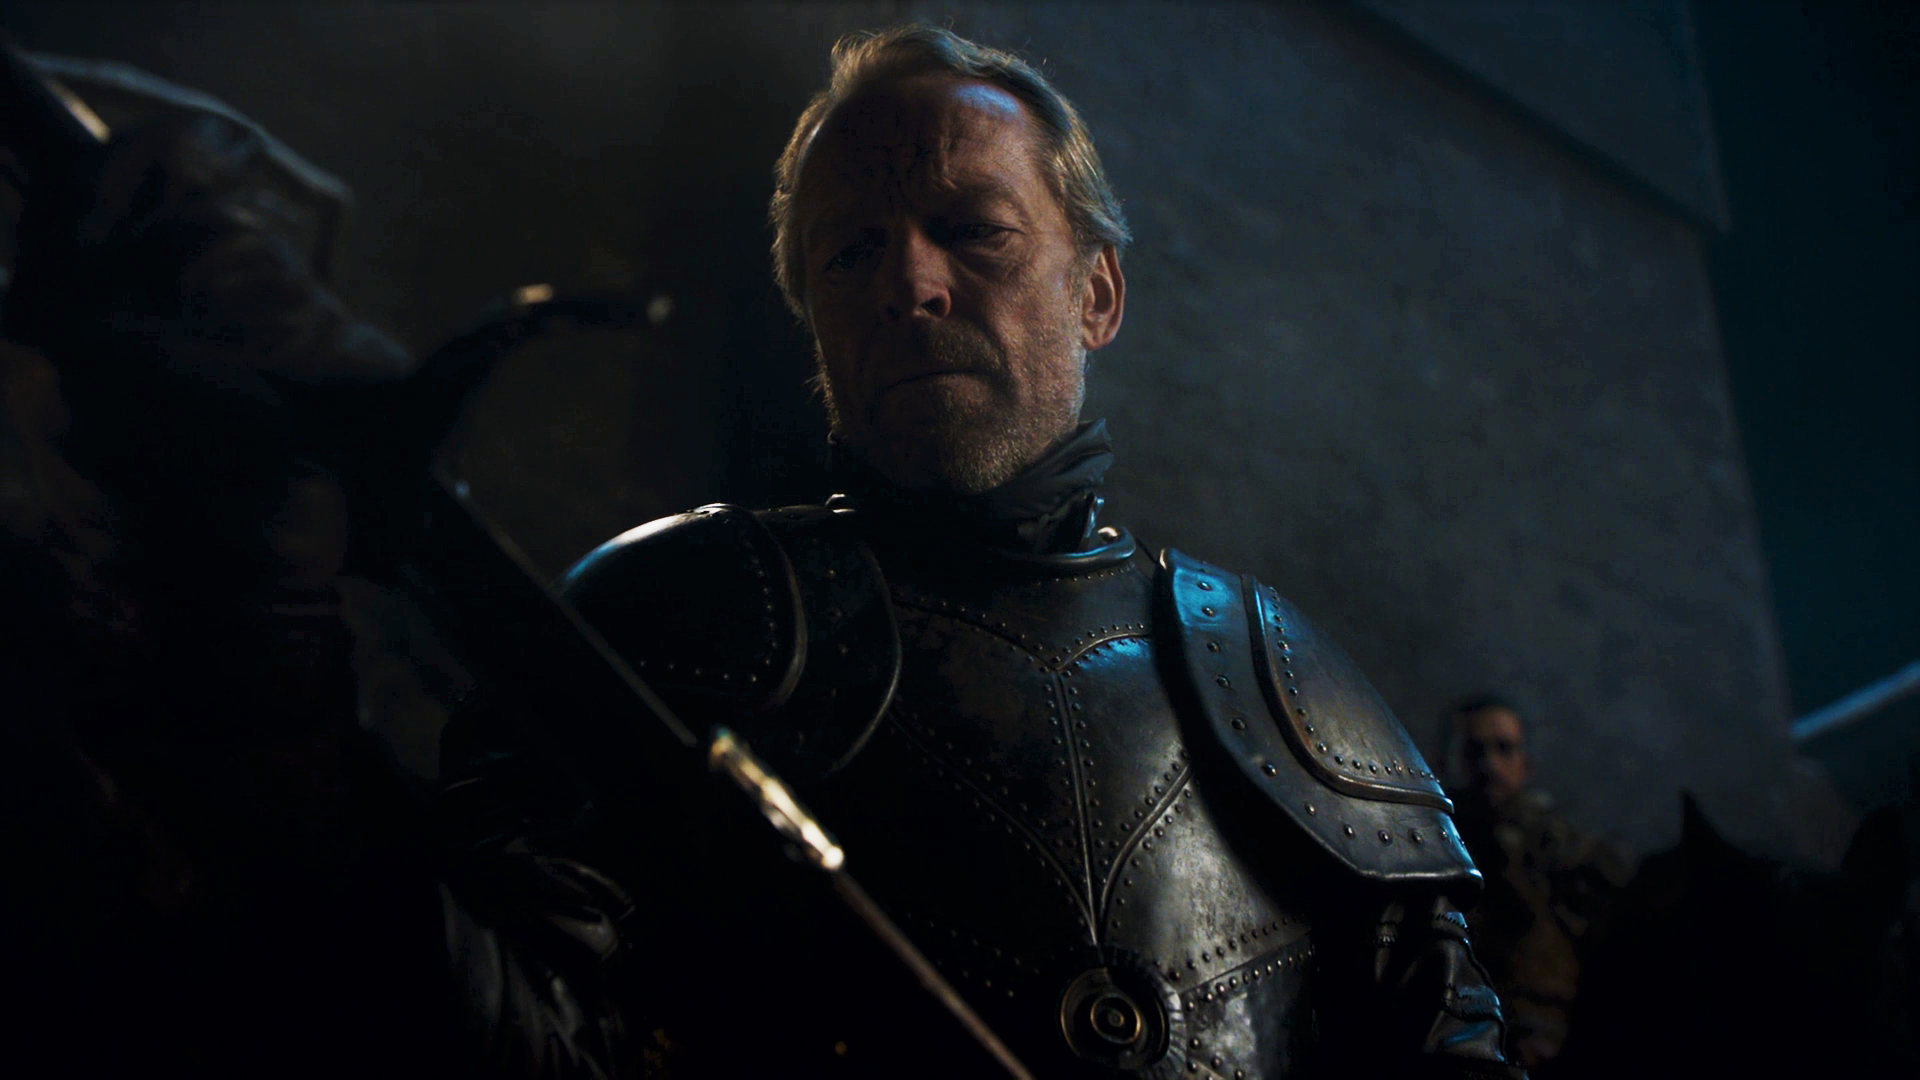 Jorah Mormont Heartsbane Valyrian Steel Sword Season 8 802